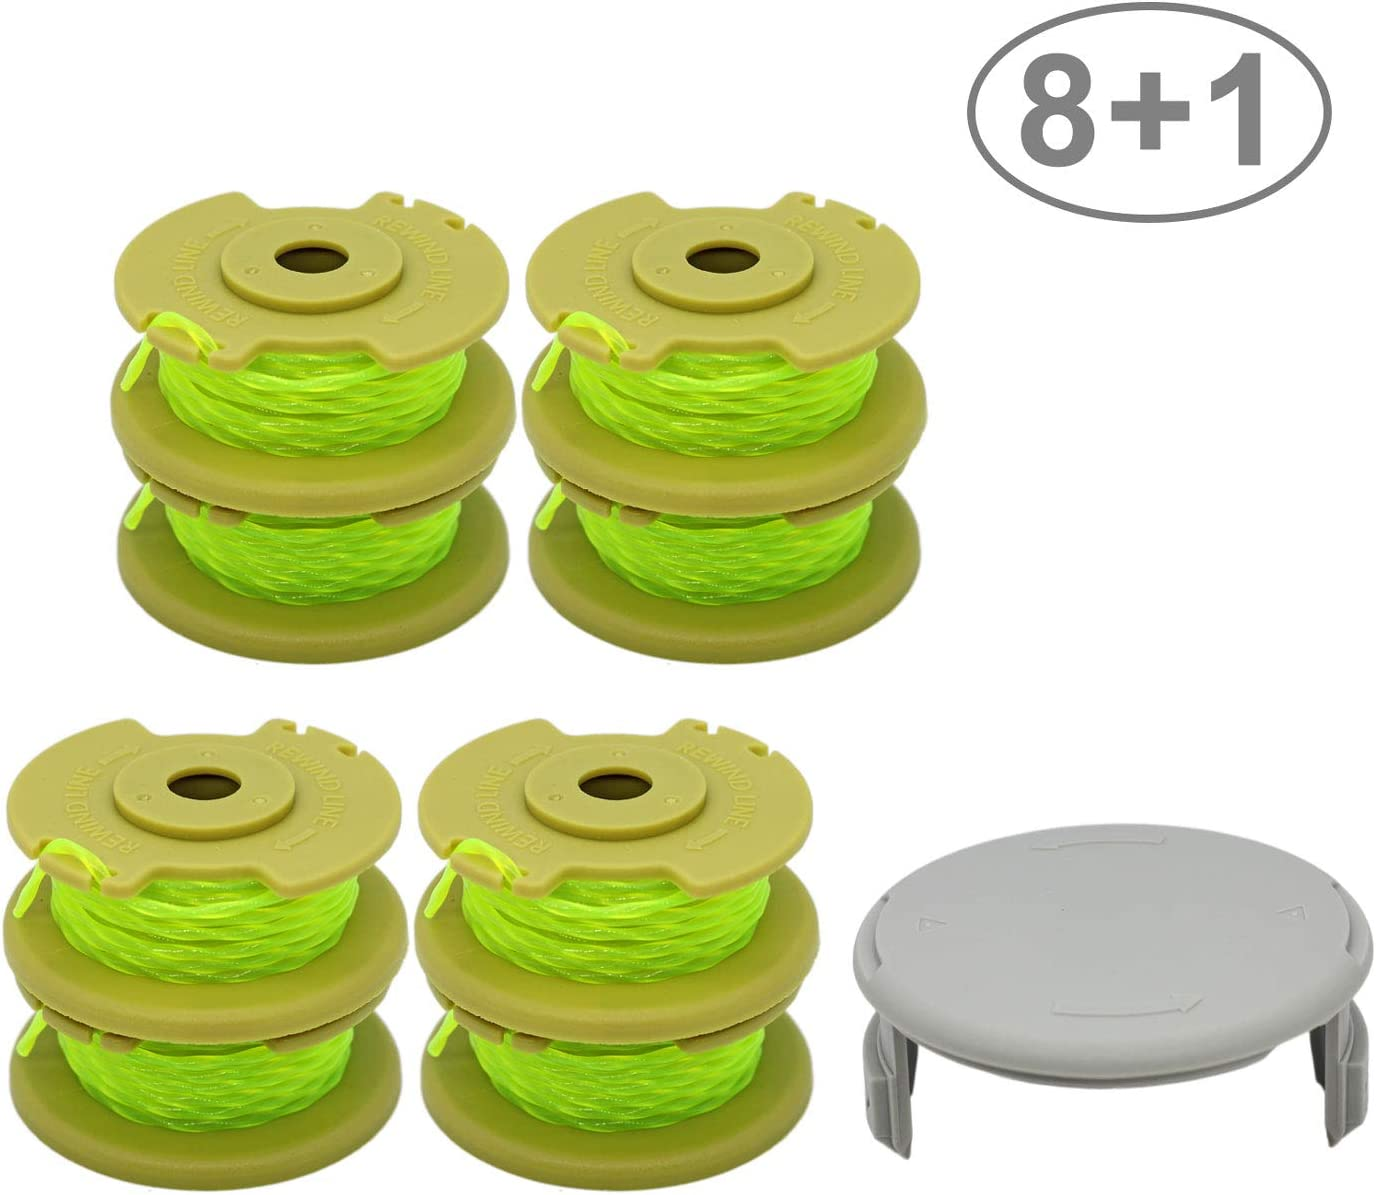 RONGJU 8 Pack Weed Eater Spool Replacement Compatible with Ryobi One Plus+ AC80RL3 for Ryobi 18v, 24v, 40v Cordless Trimmers 11ft 0.080 Inch Twisted Line + 1 Pack String Trimmer Cap (8 Spools, 1 Cap)